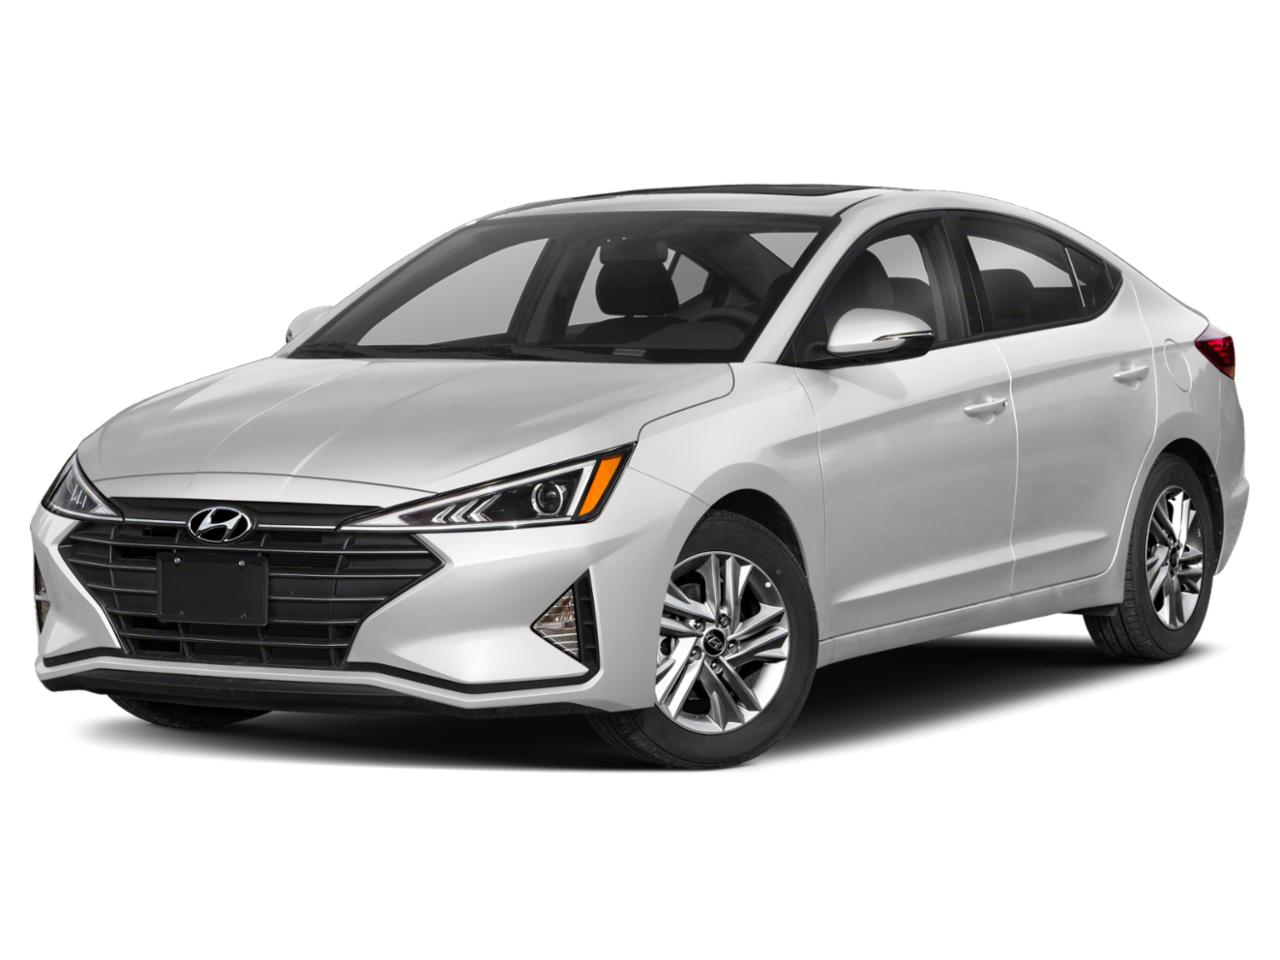 2020 Hyundai Elantra Vehicle Photo in Owensboro, KY 42303